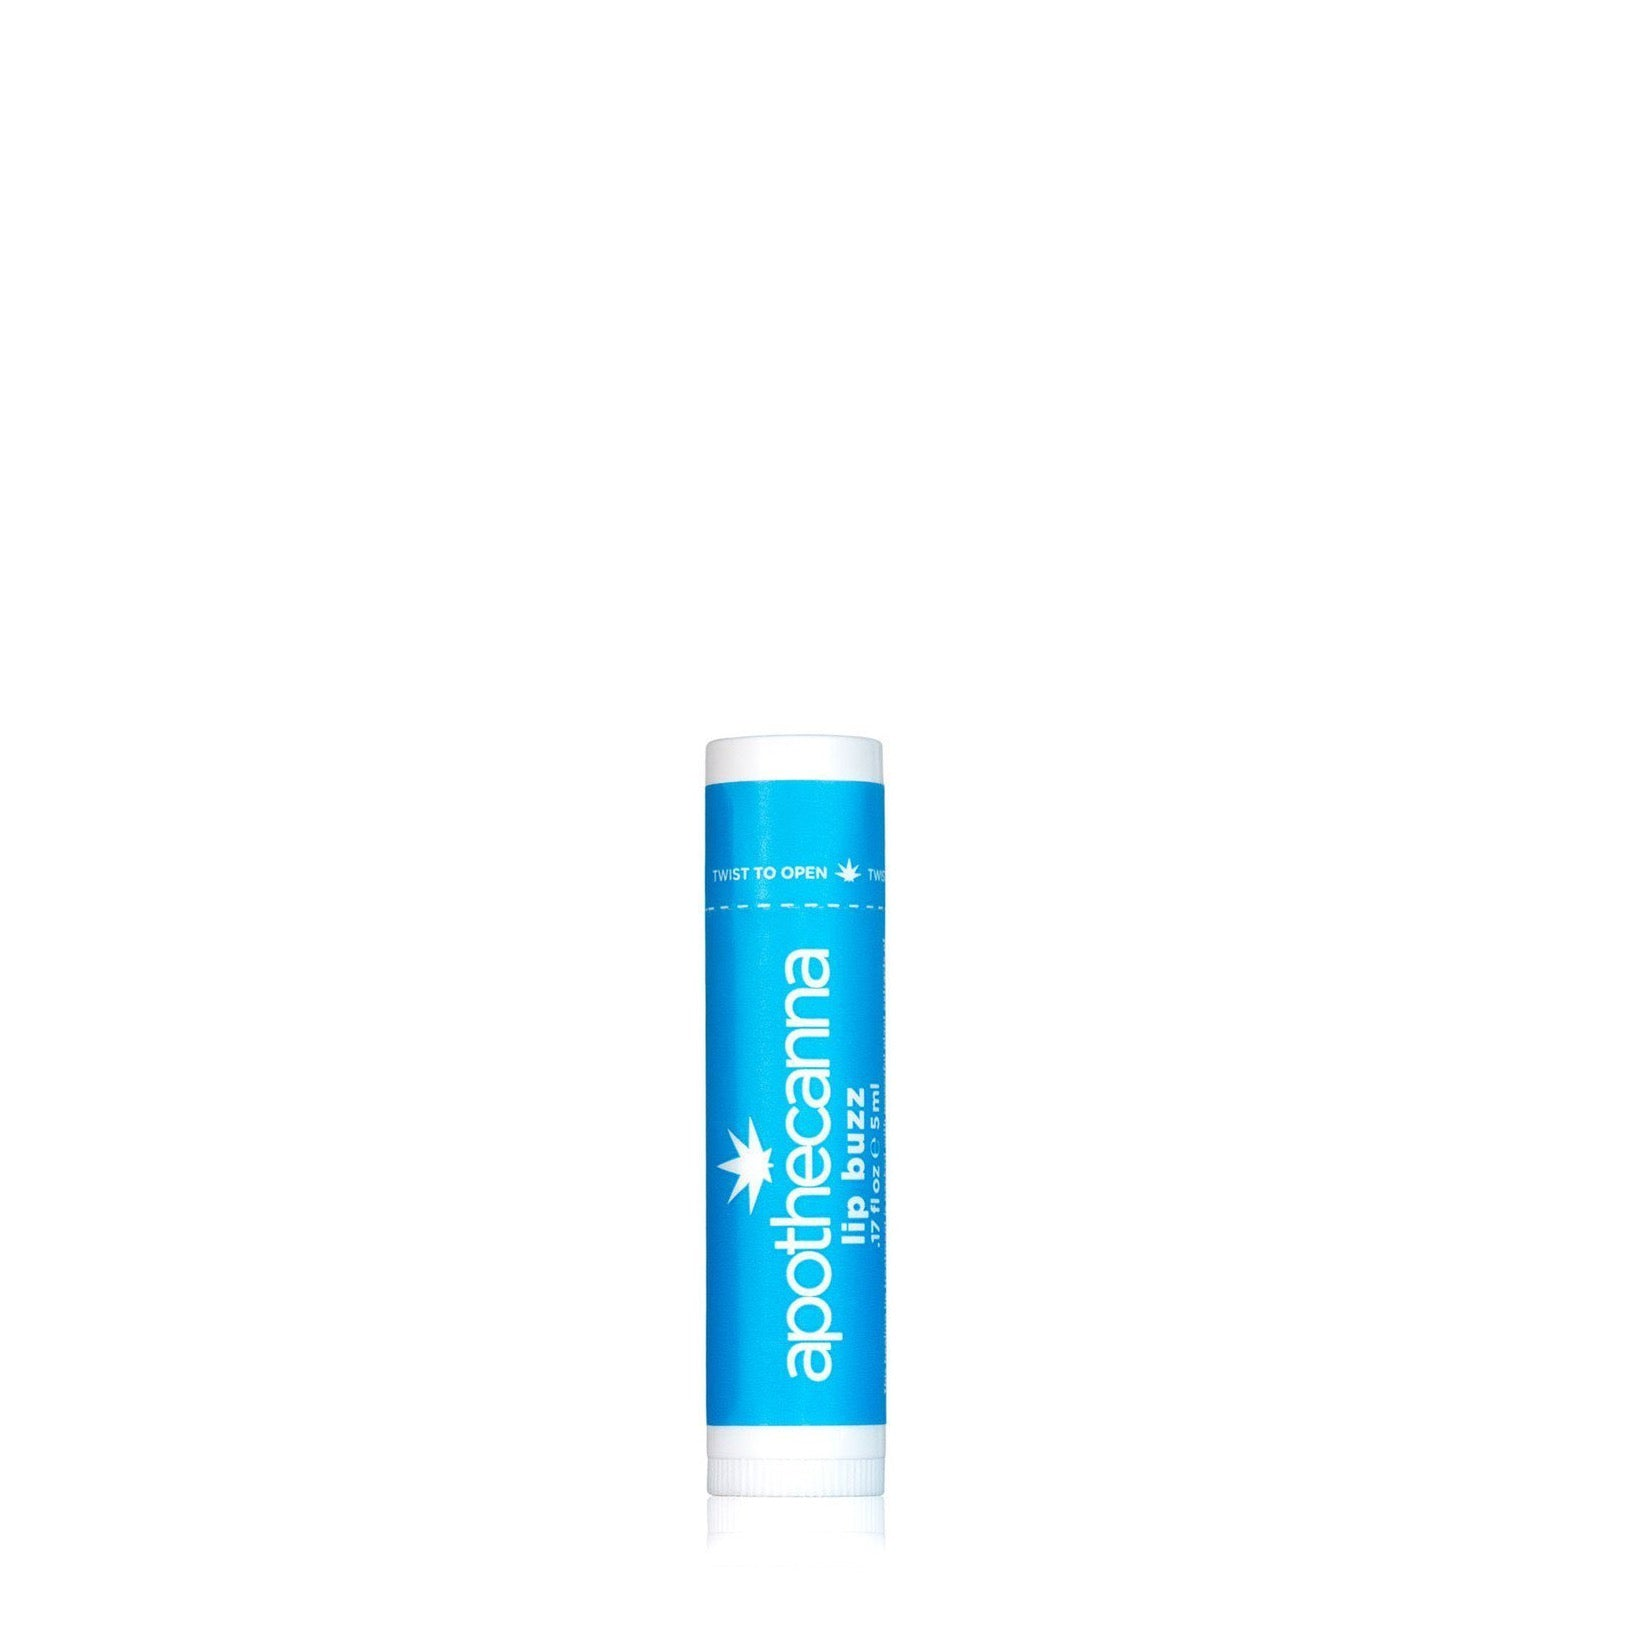 A light blue wrapper around a white canister. The logo apothecanna is written sideways and below that it says lip buzz.